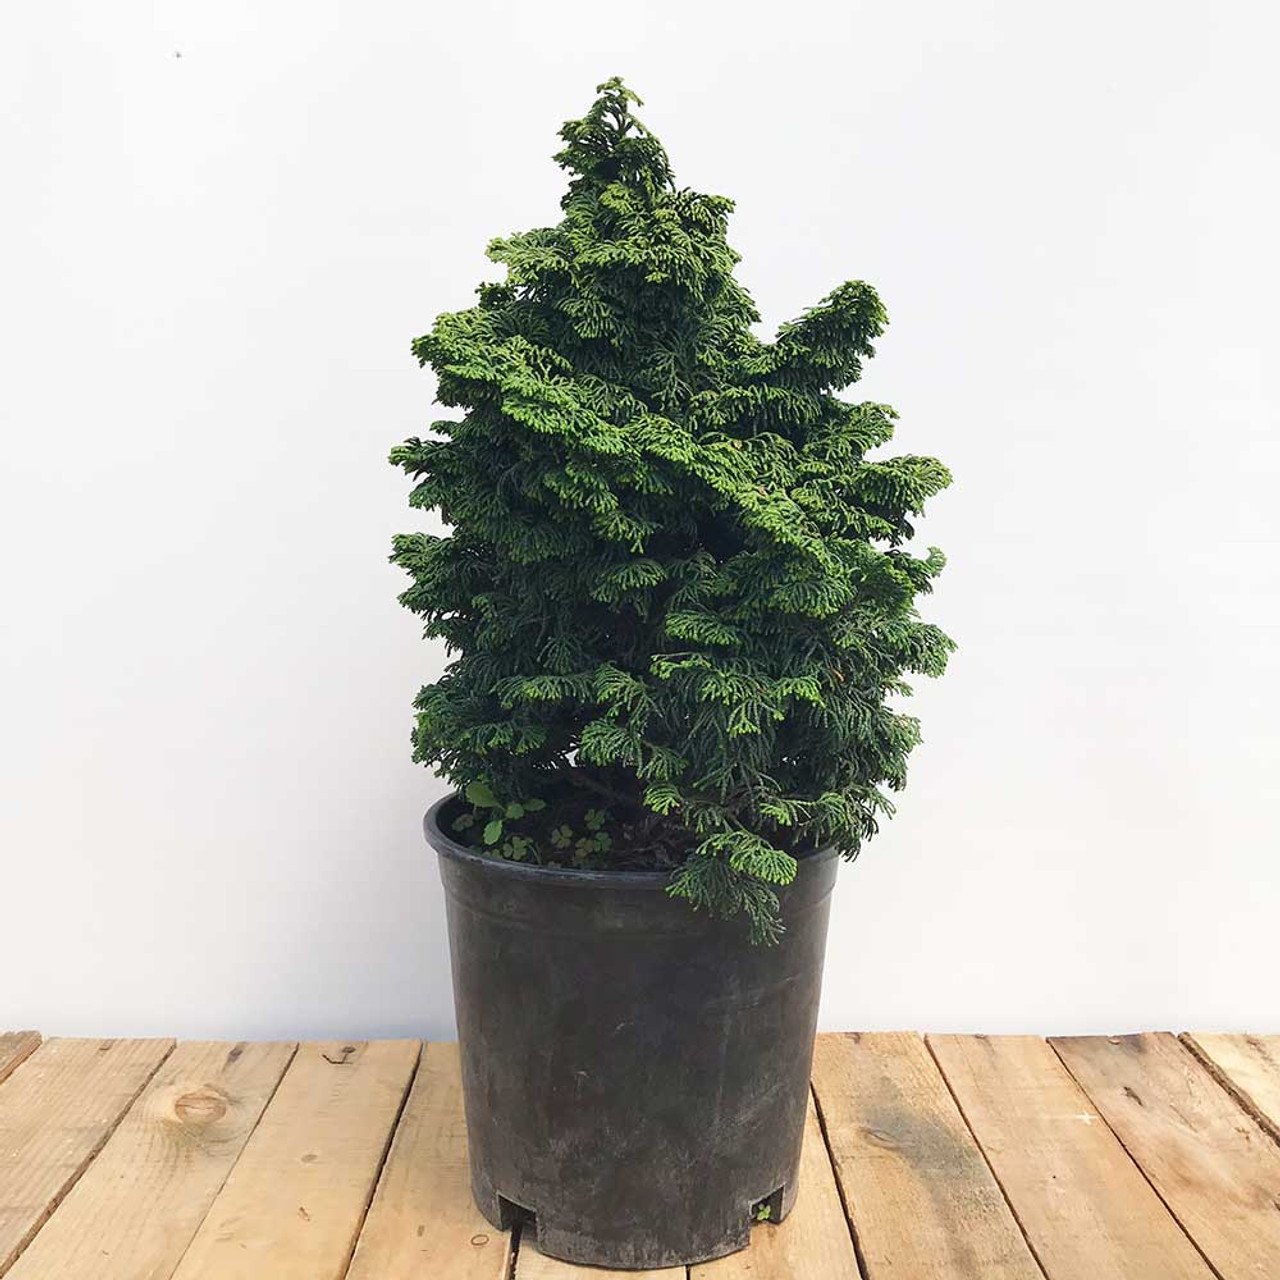 Hinoki Cypress Kosteri Bonsai Bonsai Outlet